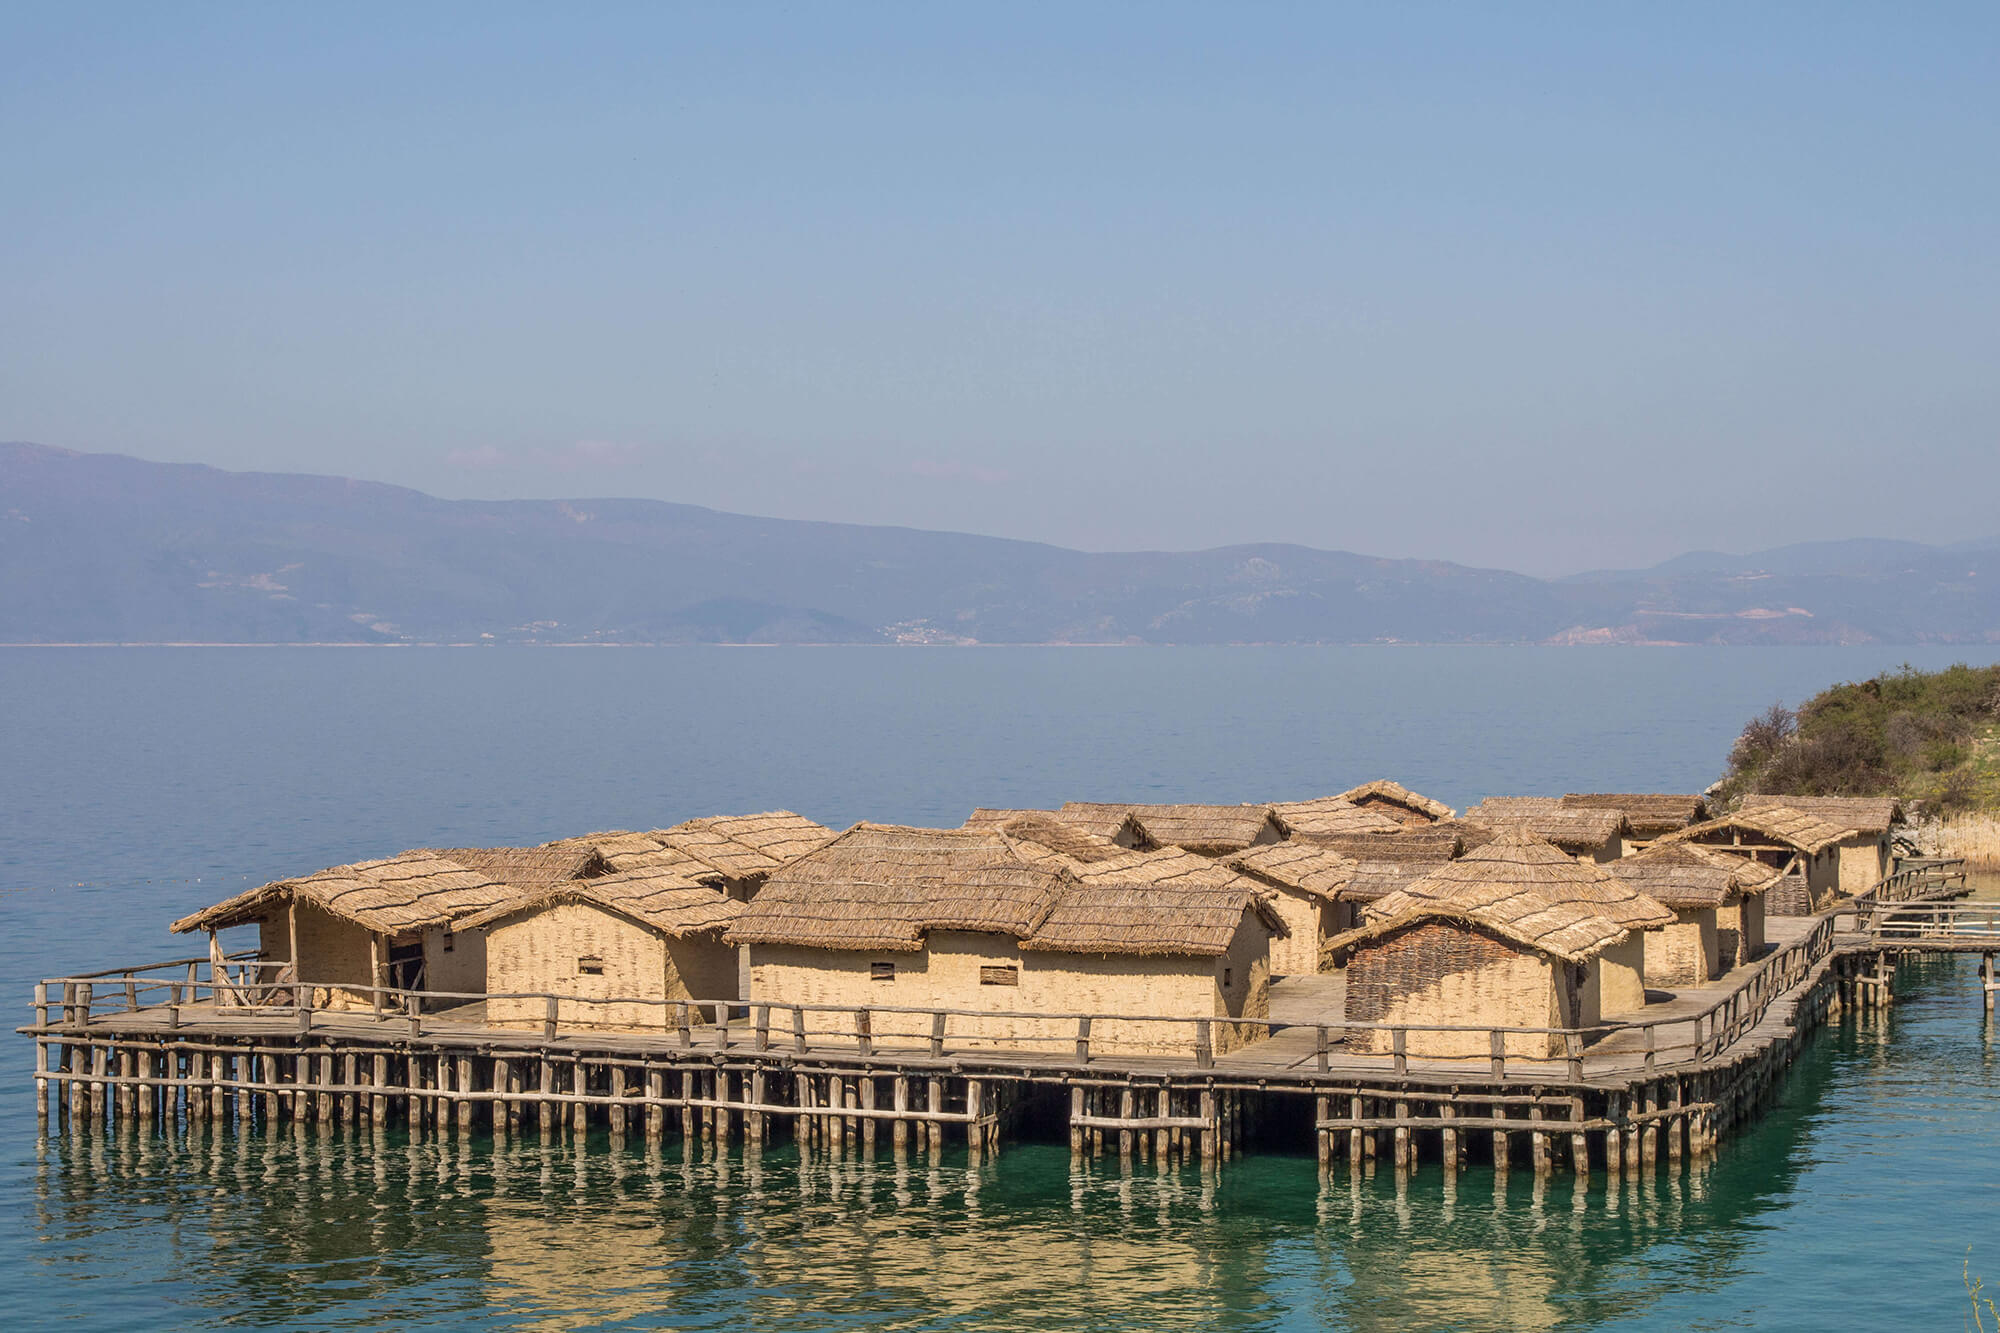 Overlooking The Bay Of Bones And The Huts In Macedonia